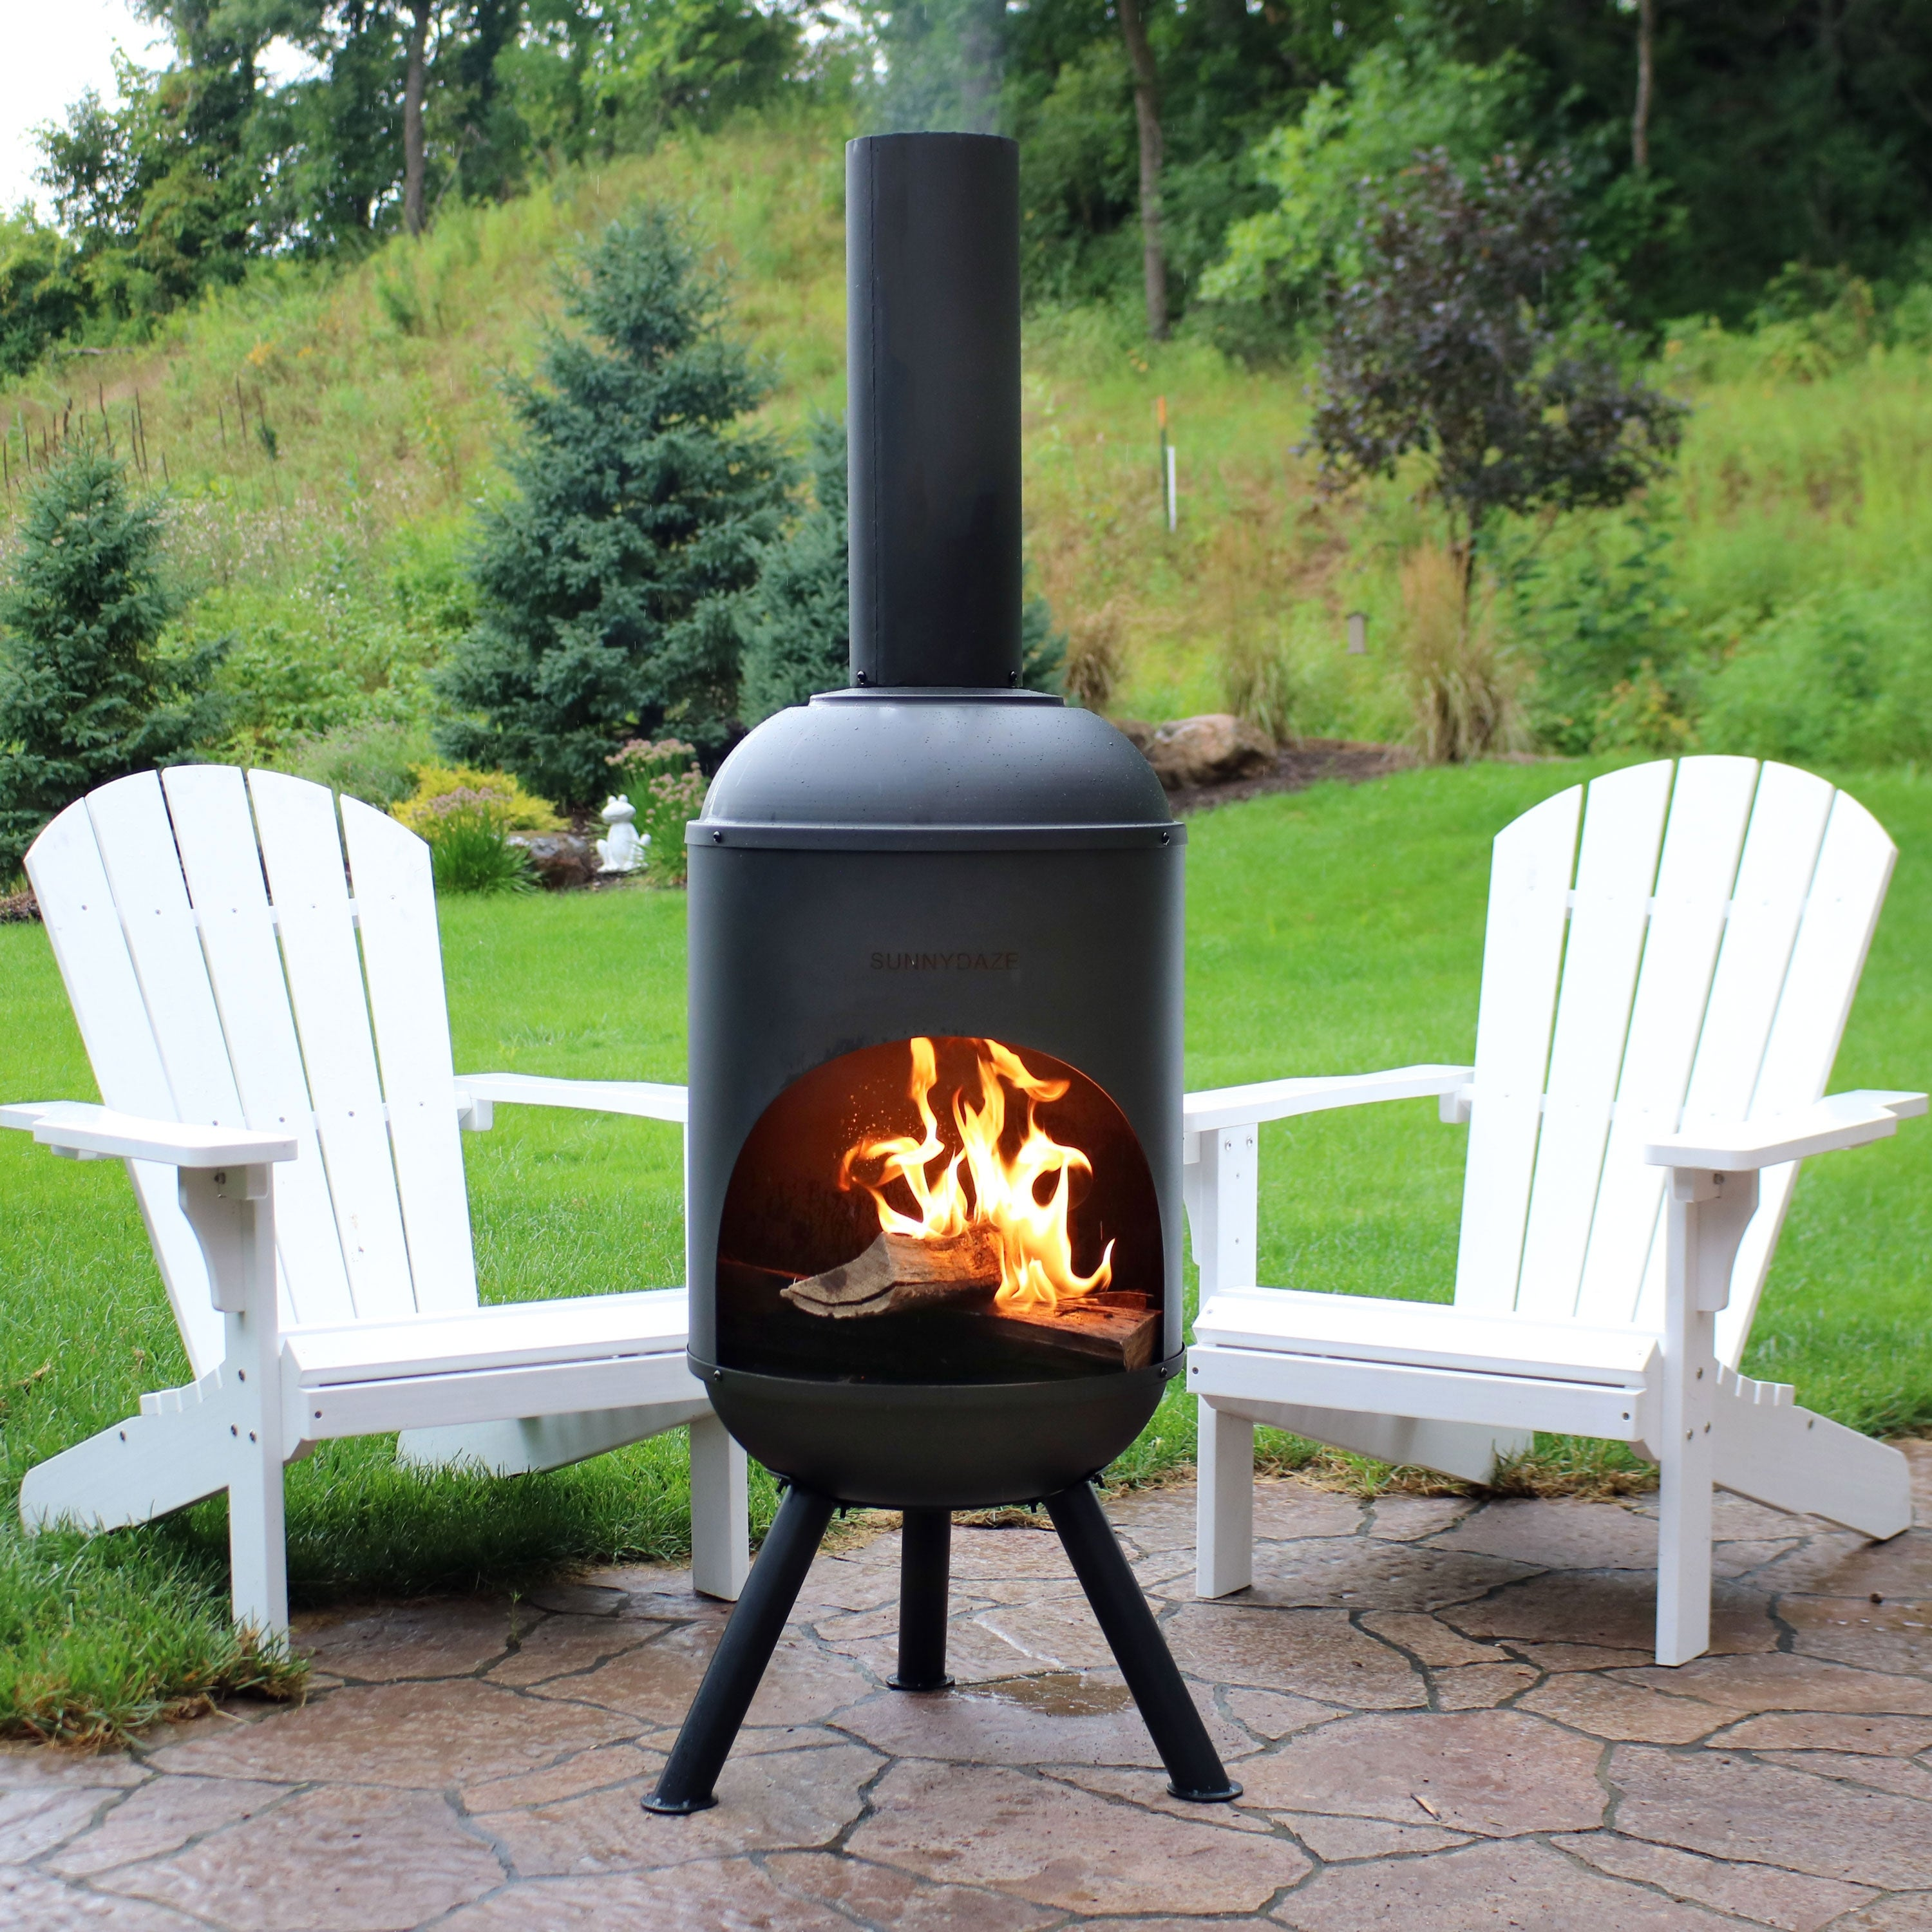 What Is The Best Chiminea?